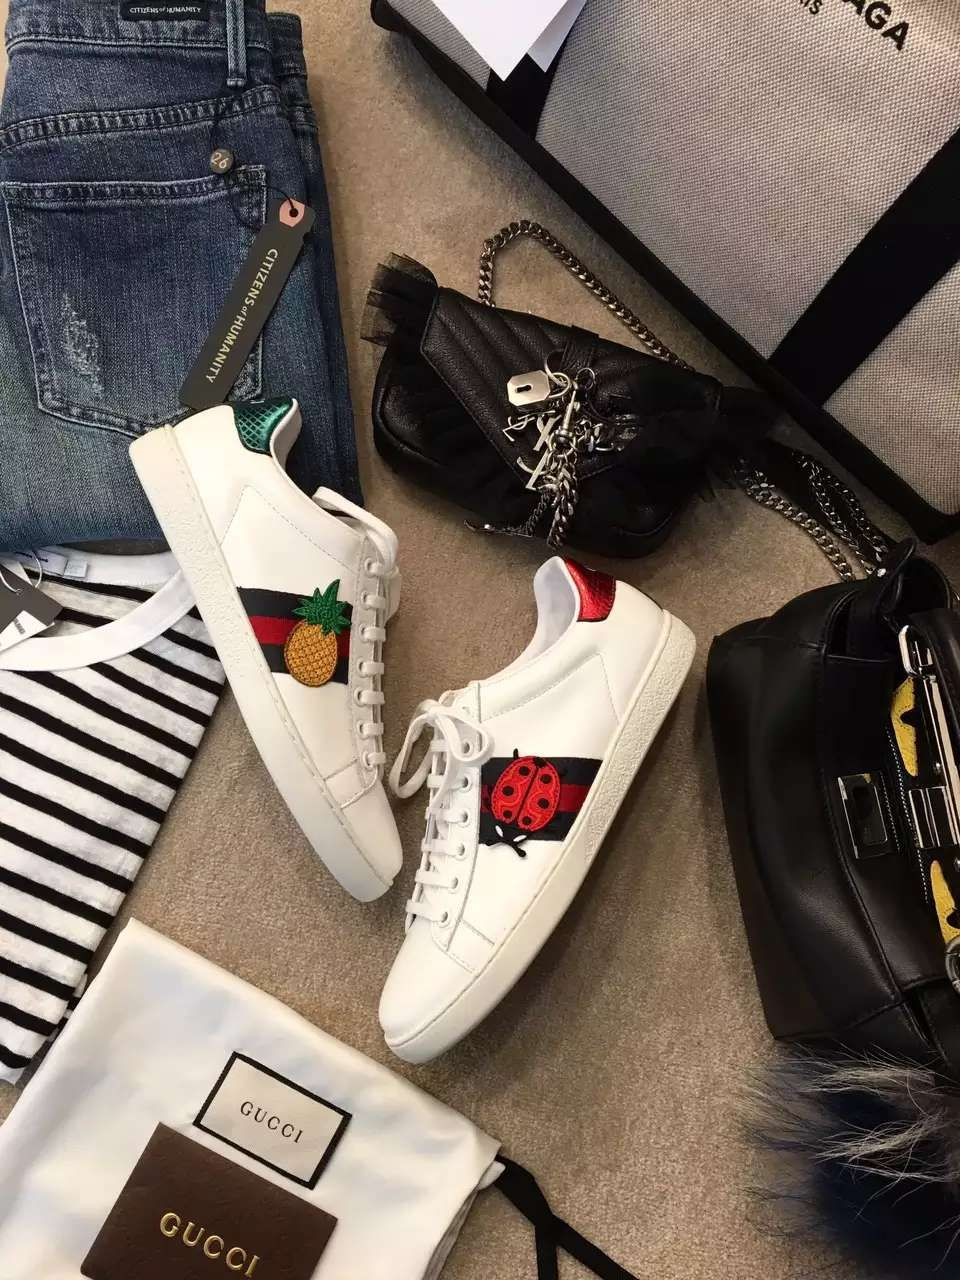 gucci Shoes, ID : 51303(FORSALE:a@yybags.com), cheap gucci online shopping, gucci girls backpacks, gucci best briefcases for men, gucci where can i buy a briefcase, ladies gucci bags, gucci buy wallets online, gucci womens designer wallets, gucci italian handbags, gucci leather laptop backpack, gucci evening handbags, gucci best backpacks #gucciShoes #gucci #gucci #backpack #shop